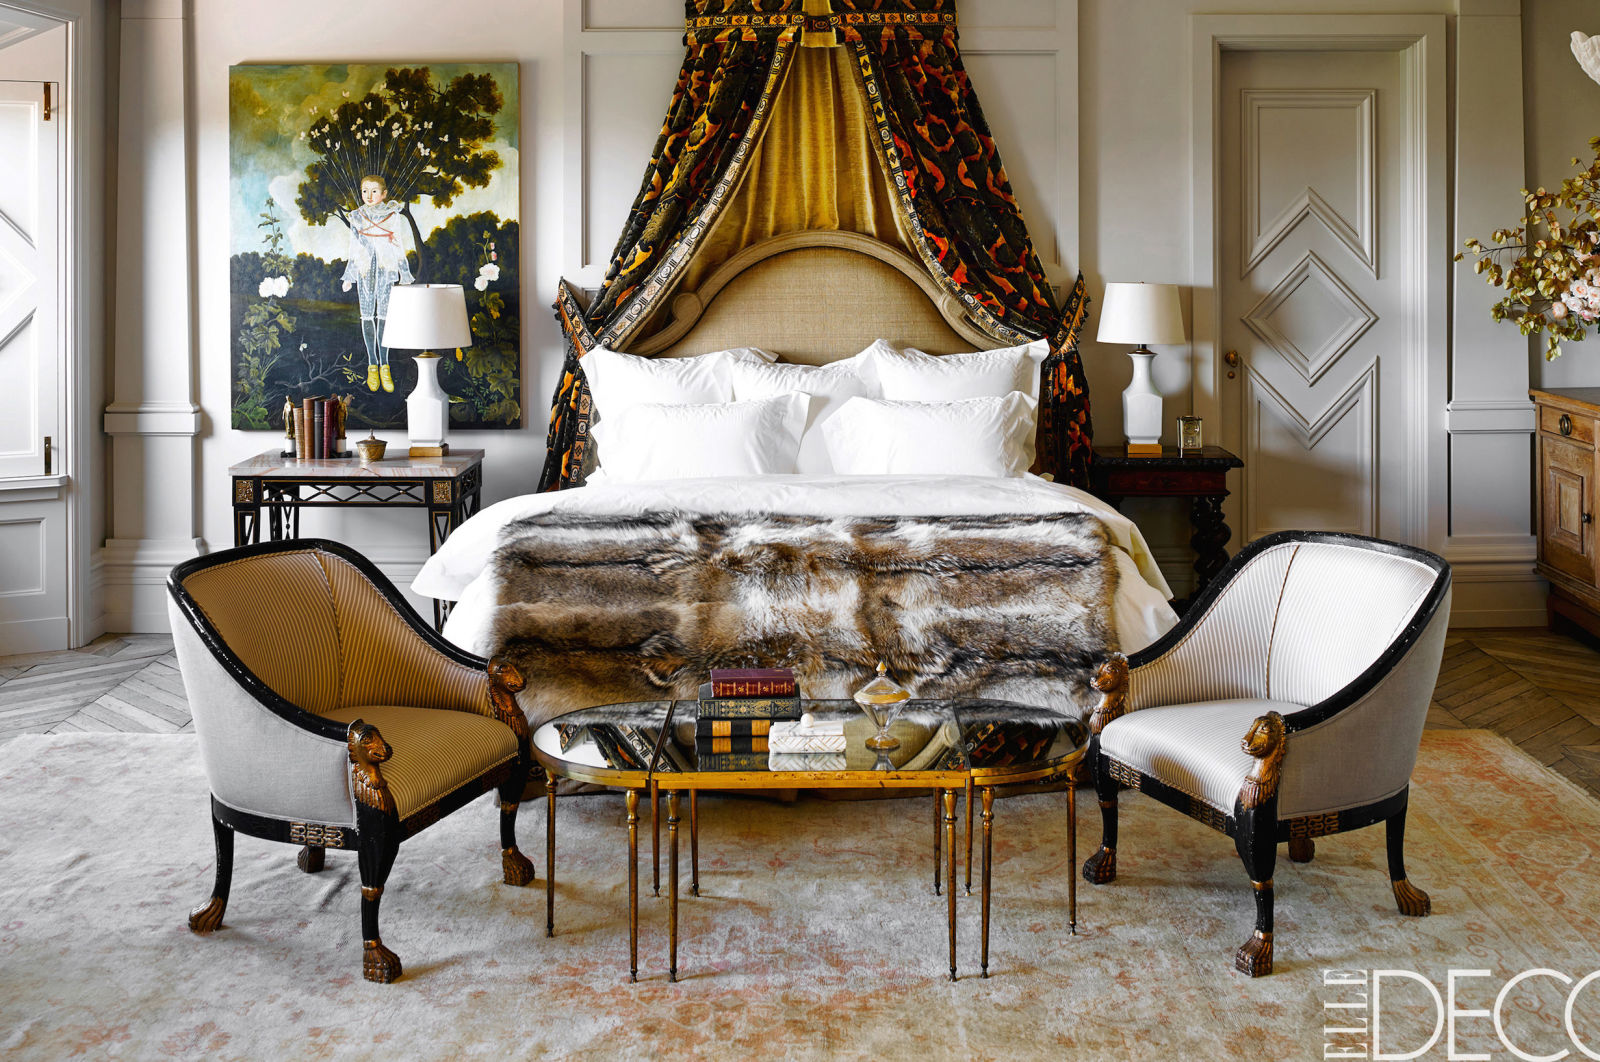 20 Bedroom Rugs For Interior Design - Bedroom Design With Rugs